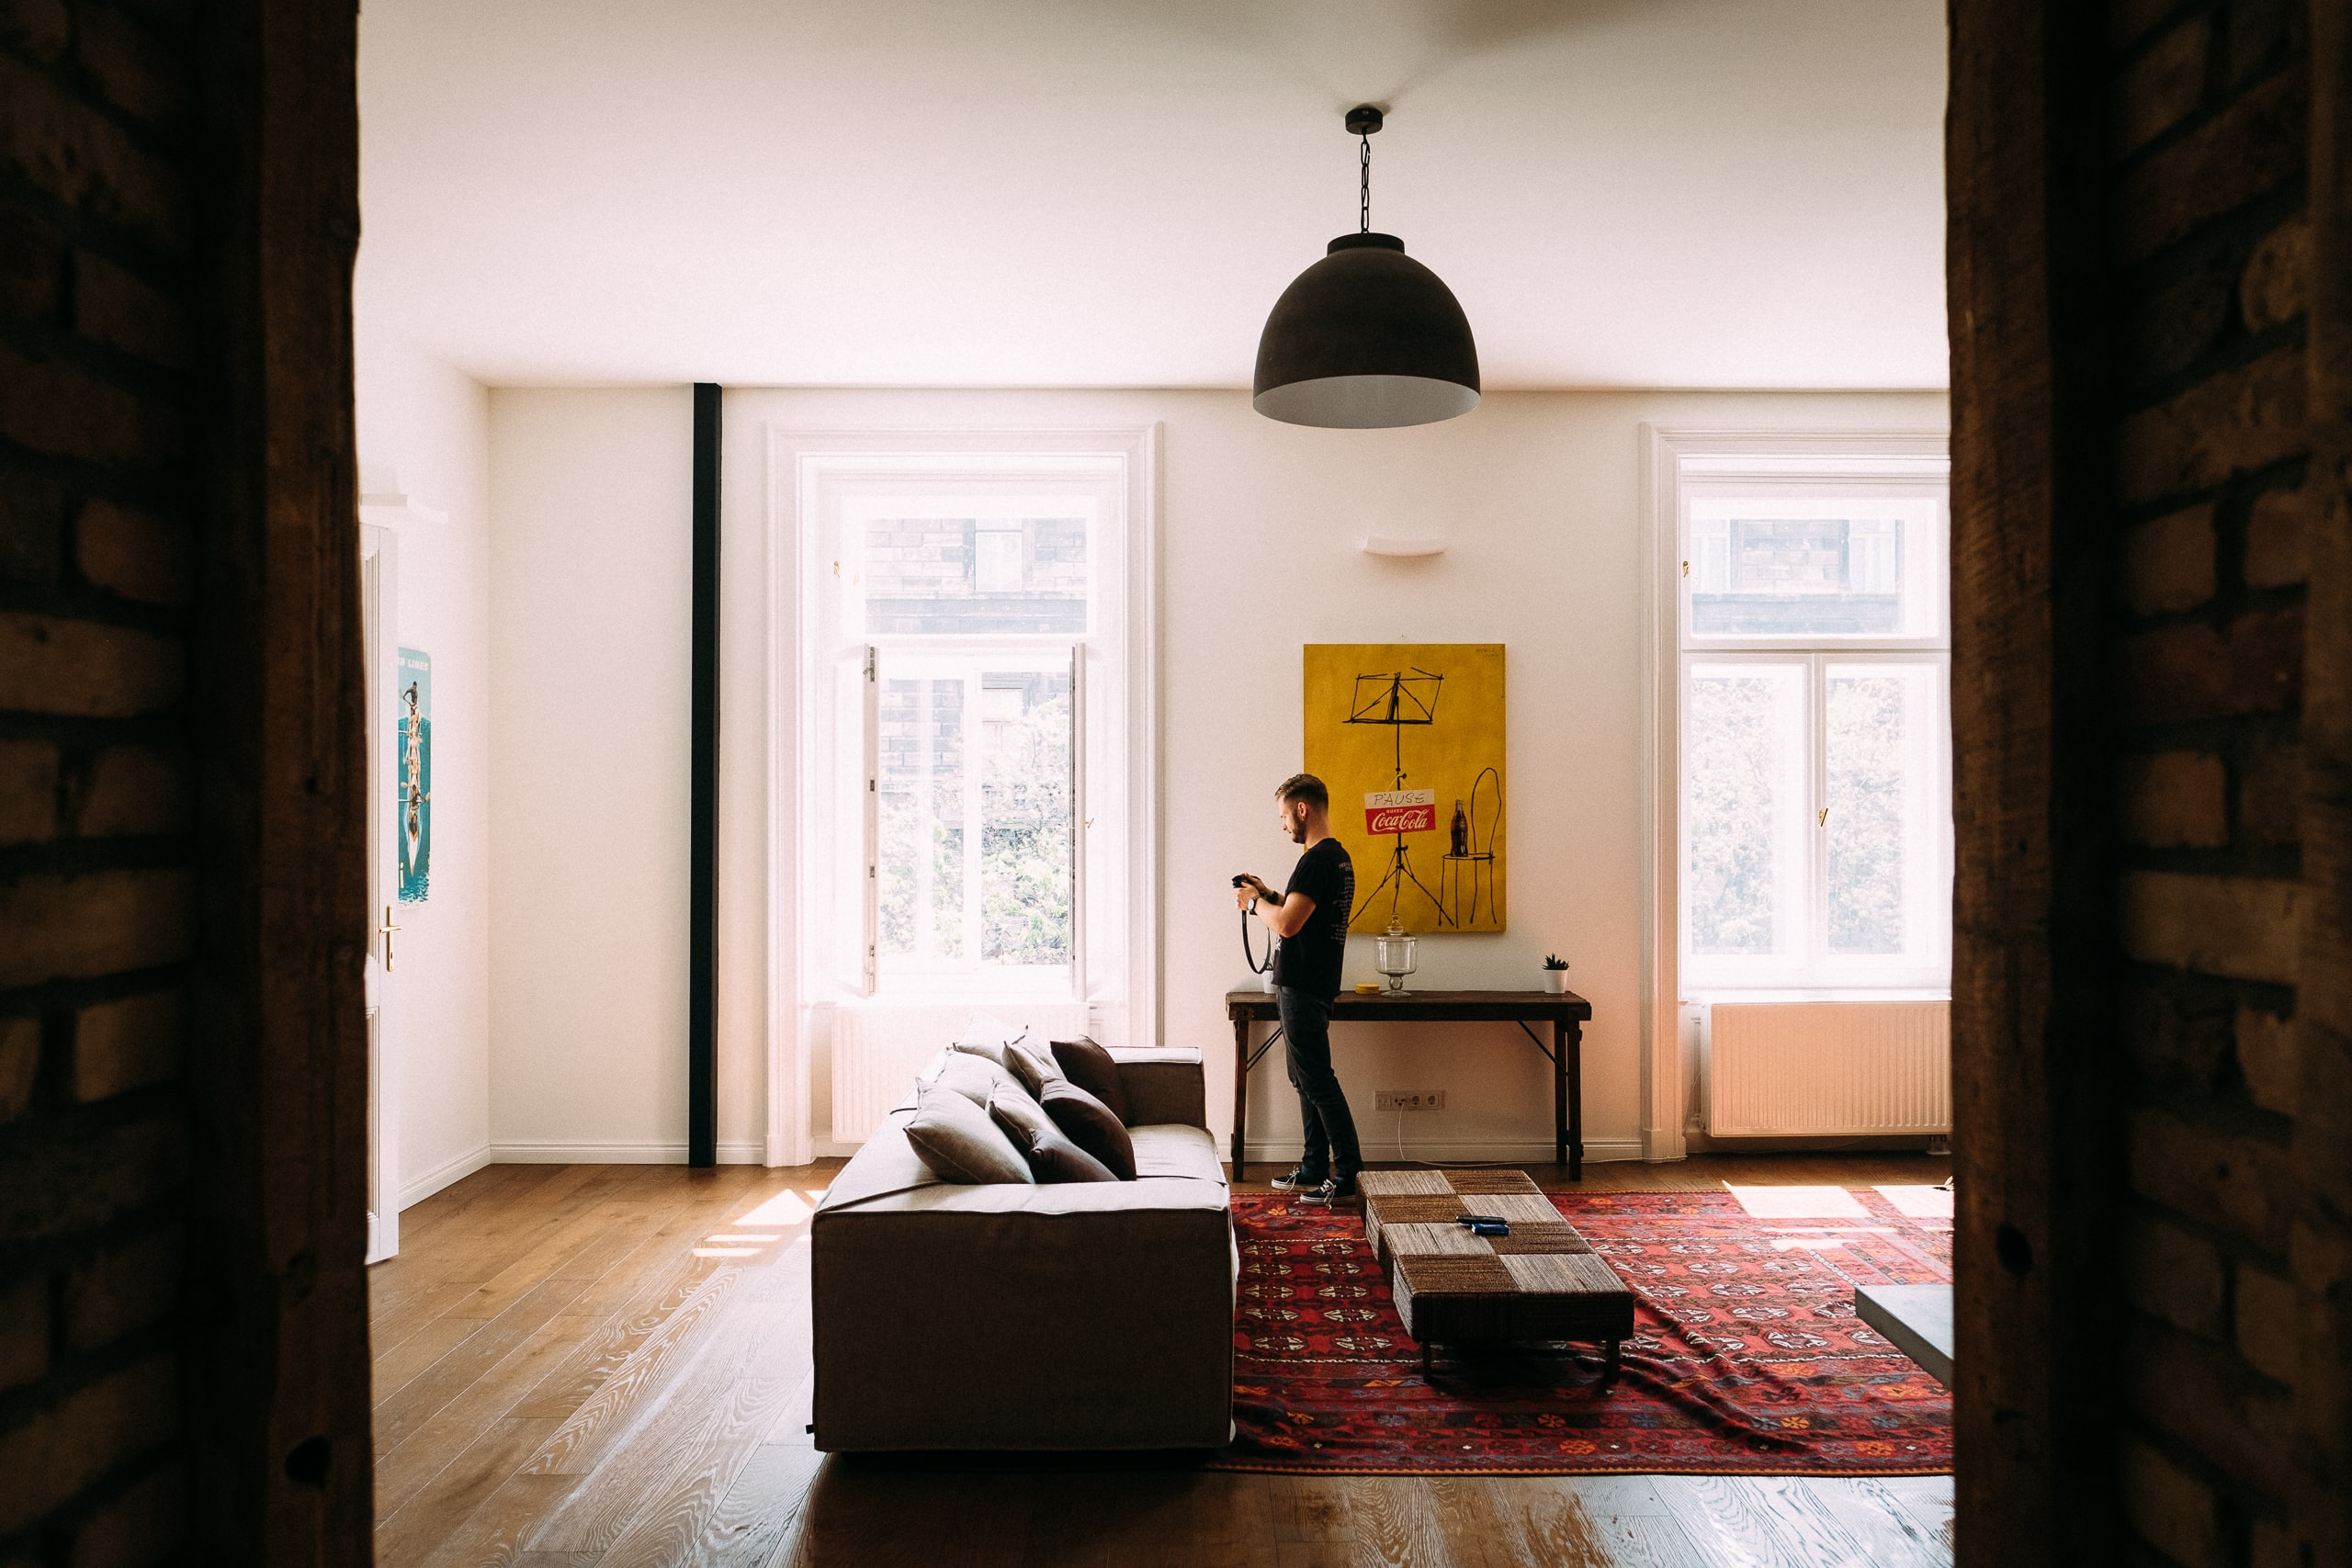 Man stands in bright living room near couch and low table in front of poster